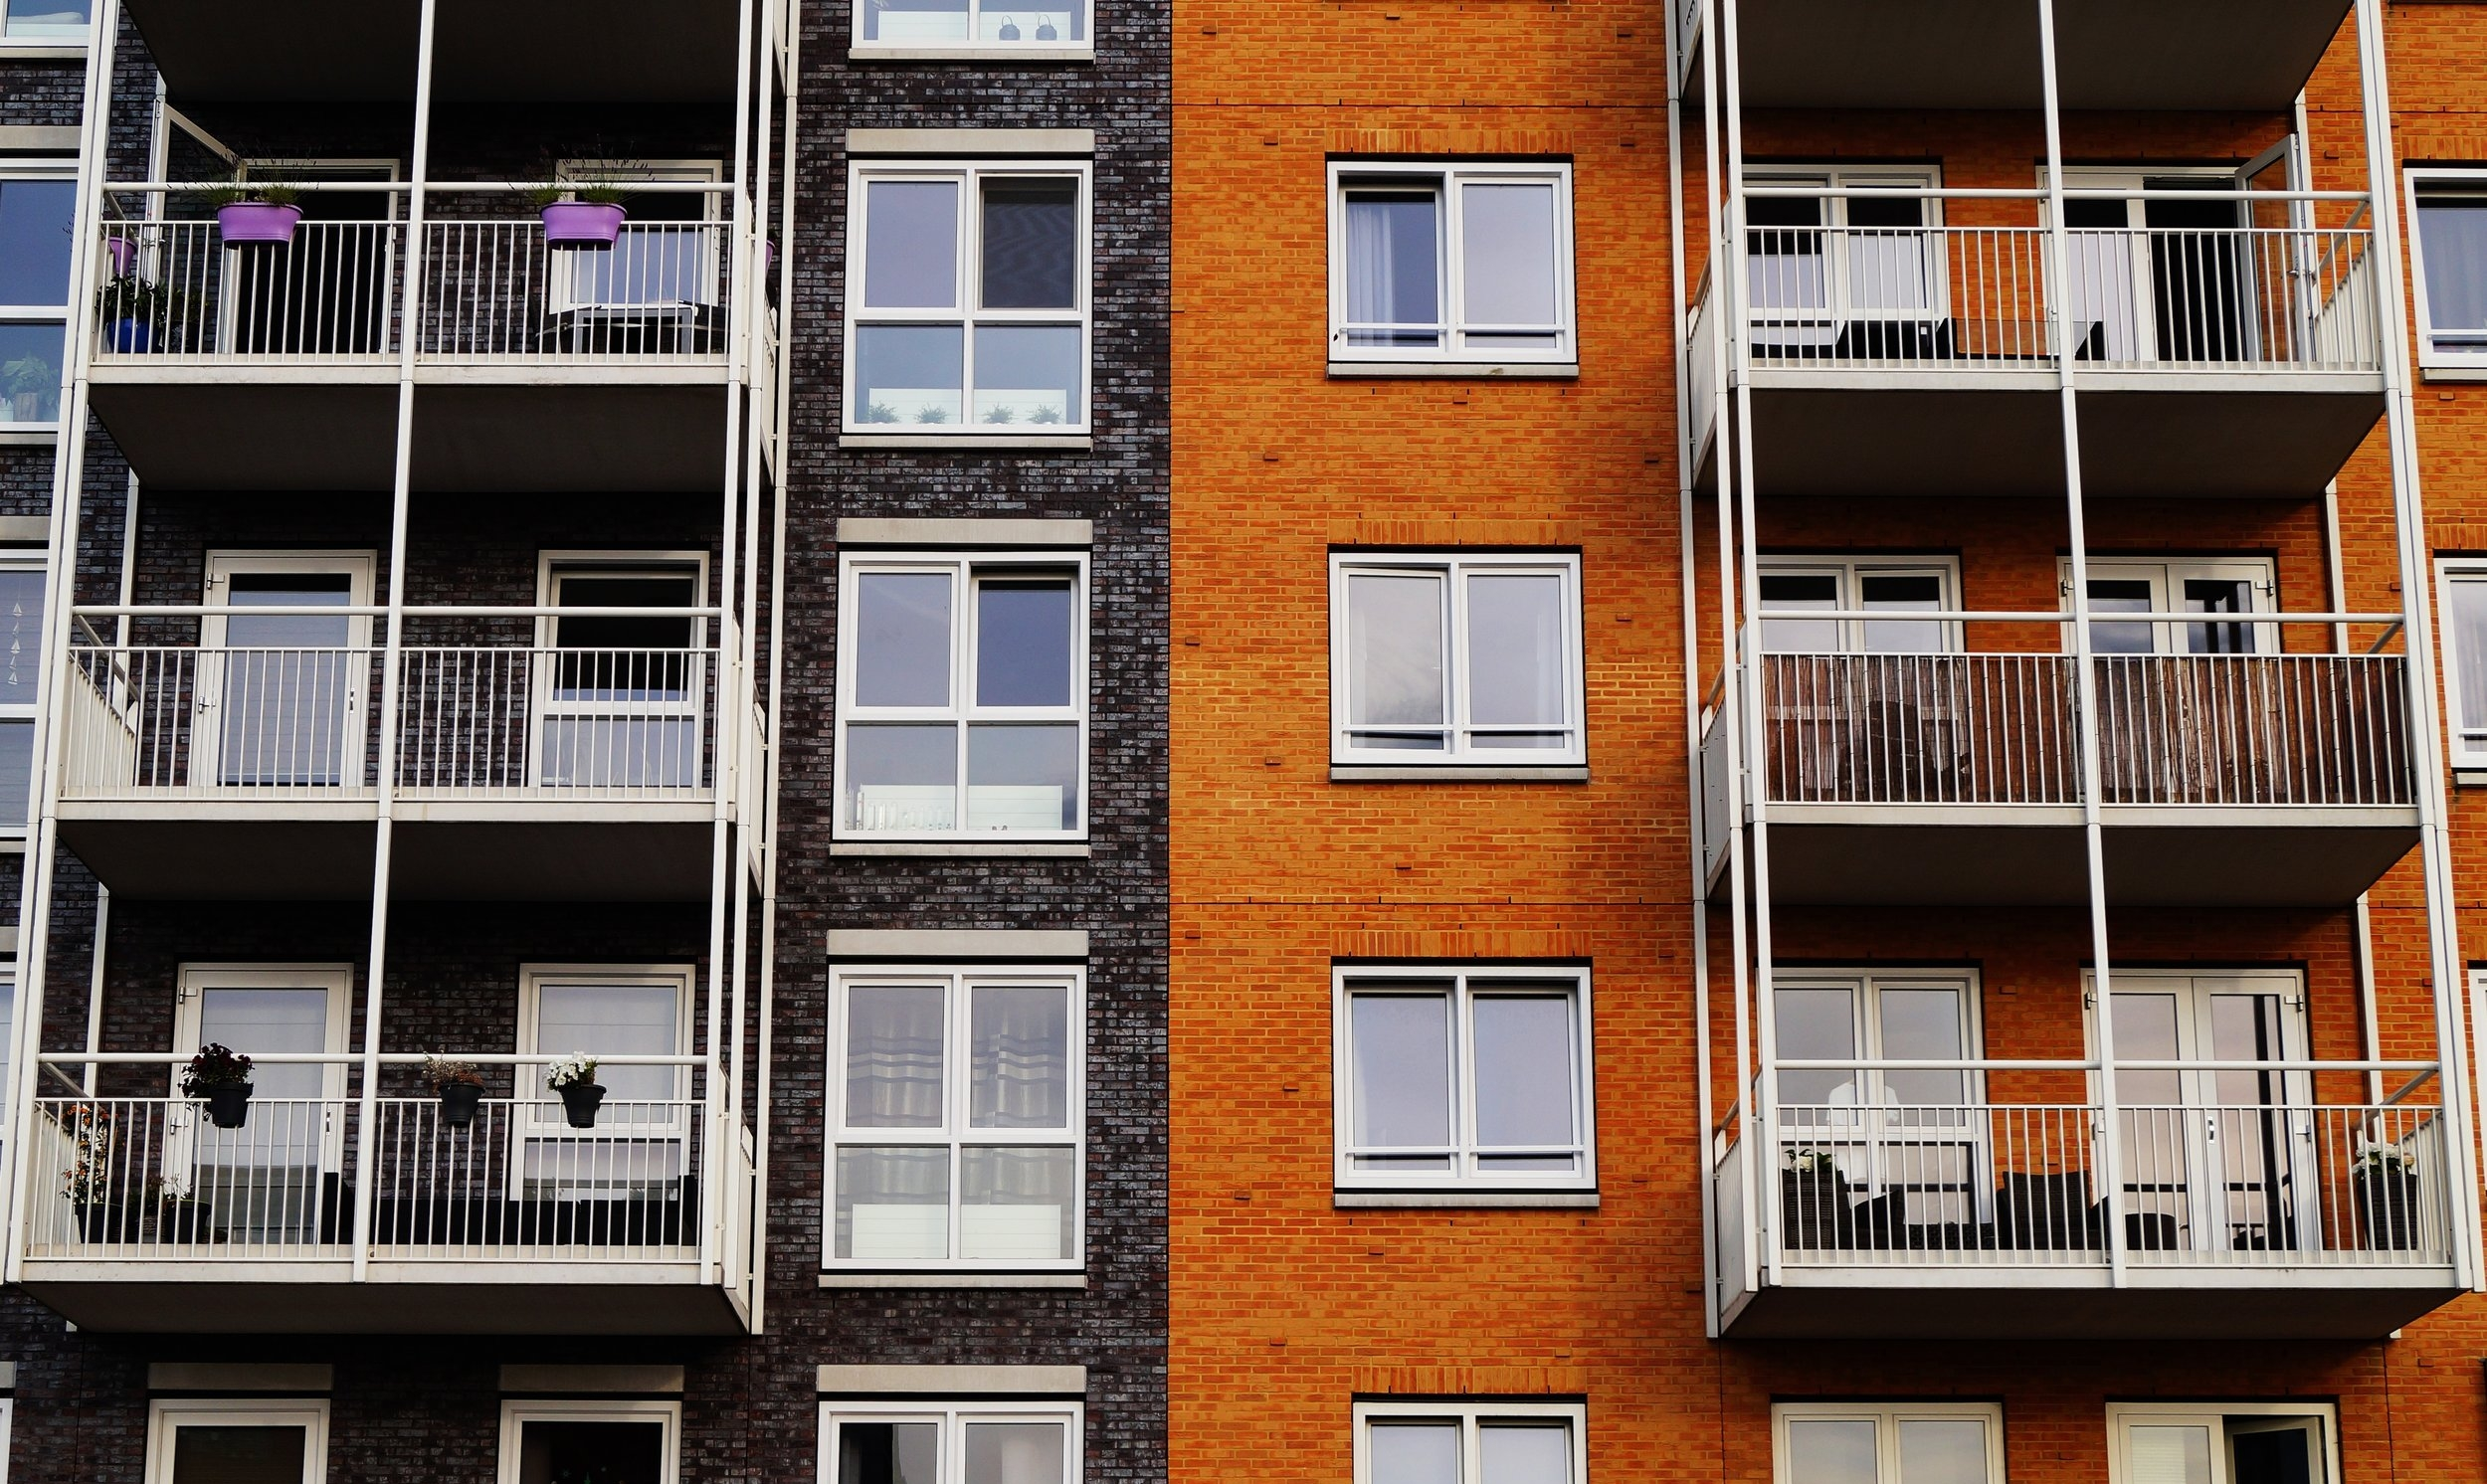 apartment-architecture-balcony-129494.jpg